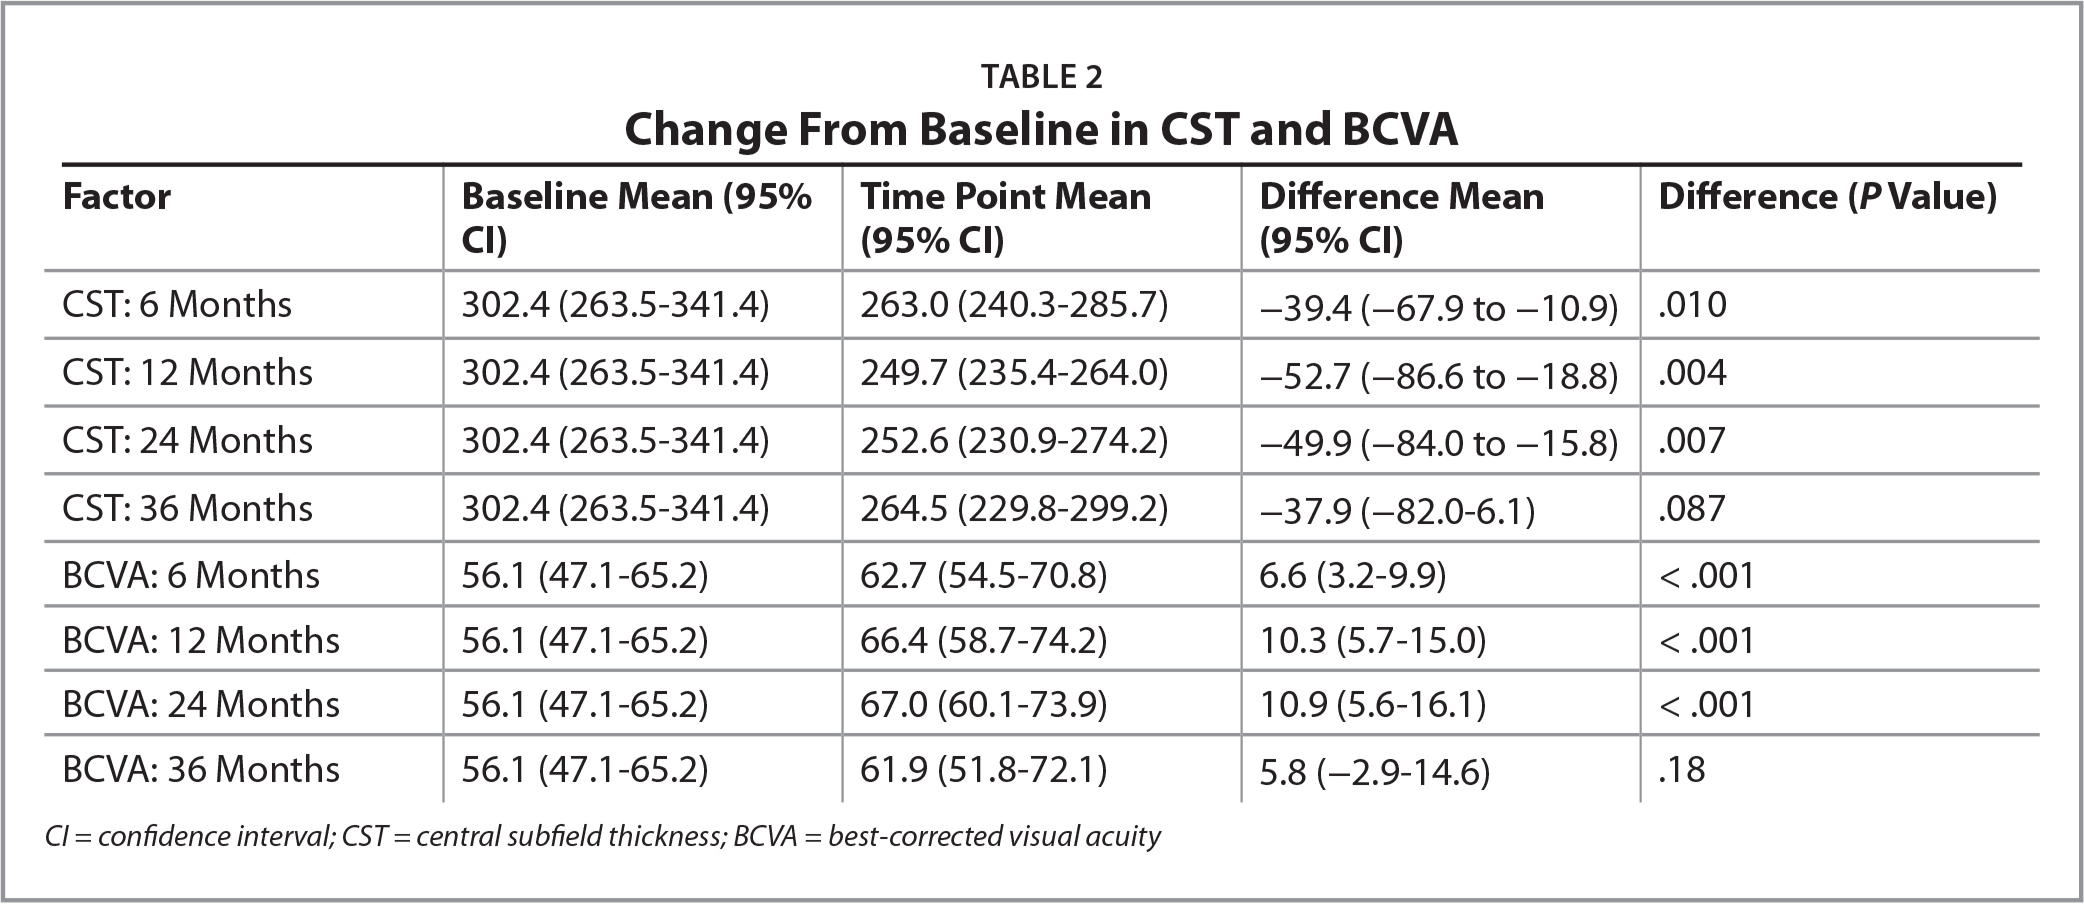 Change From Baseline in CST and BCVA